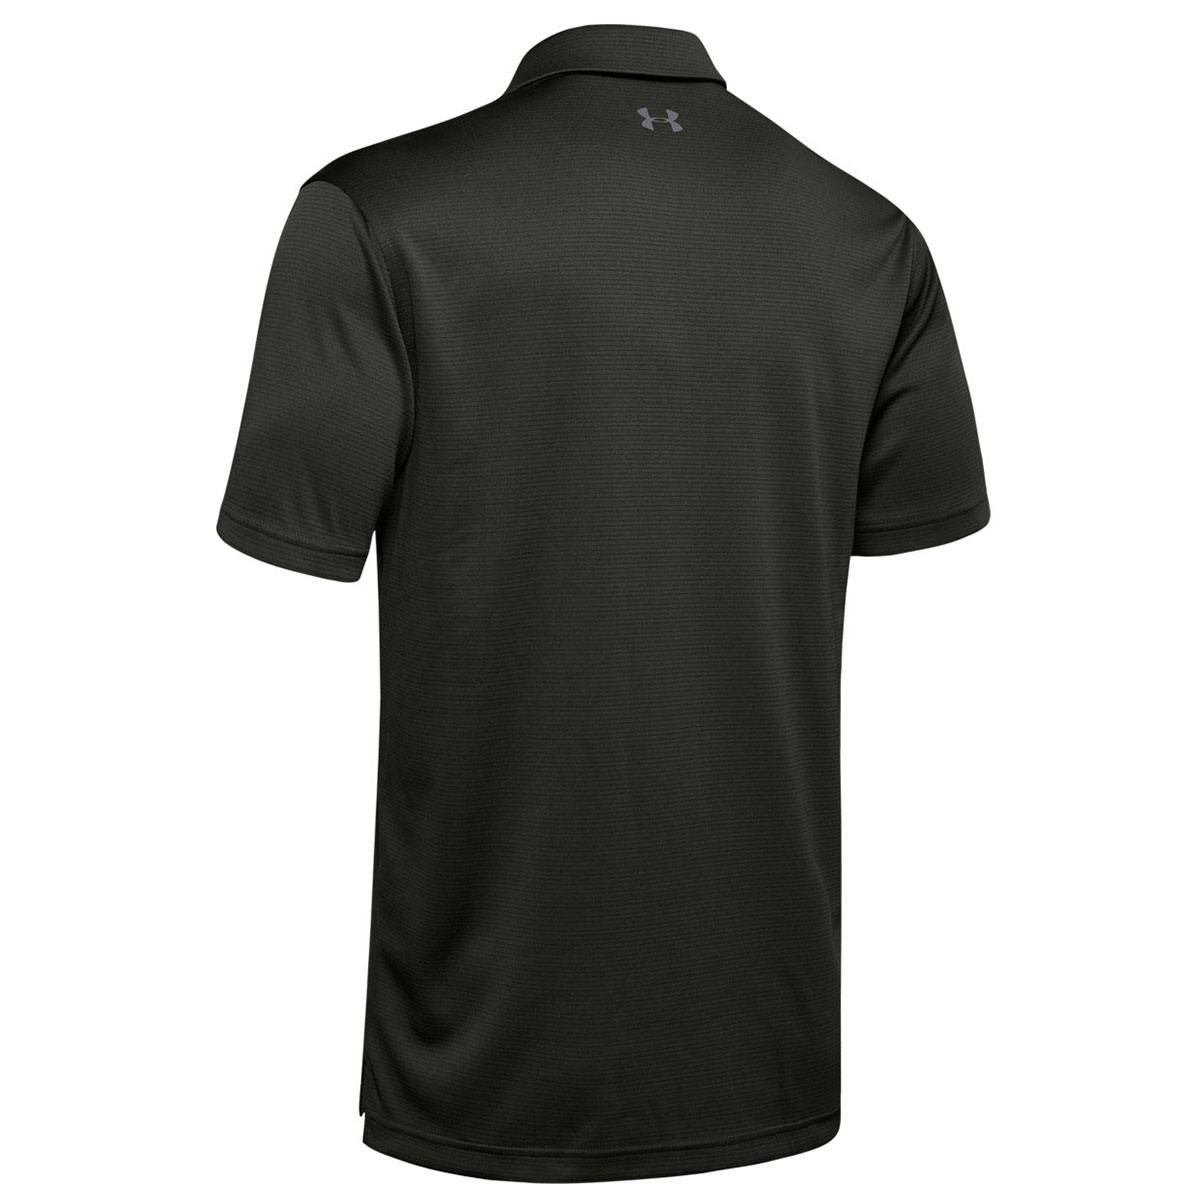 Under-Armour-Mens-2019-Golf-Tech-Wicking-Textured-Soft-Light-Polo-Shirt thumbnail 11